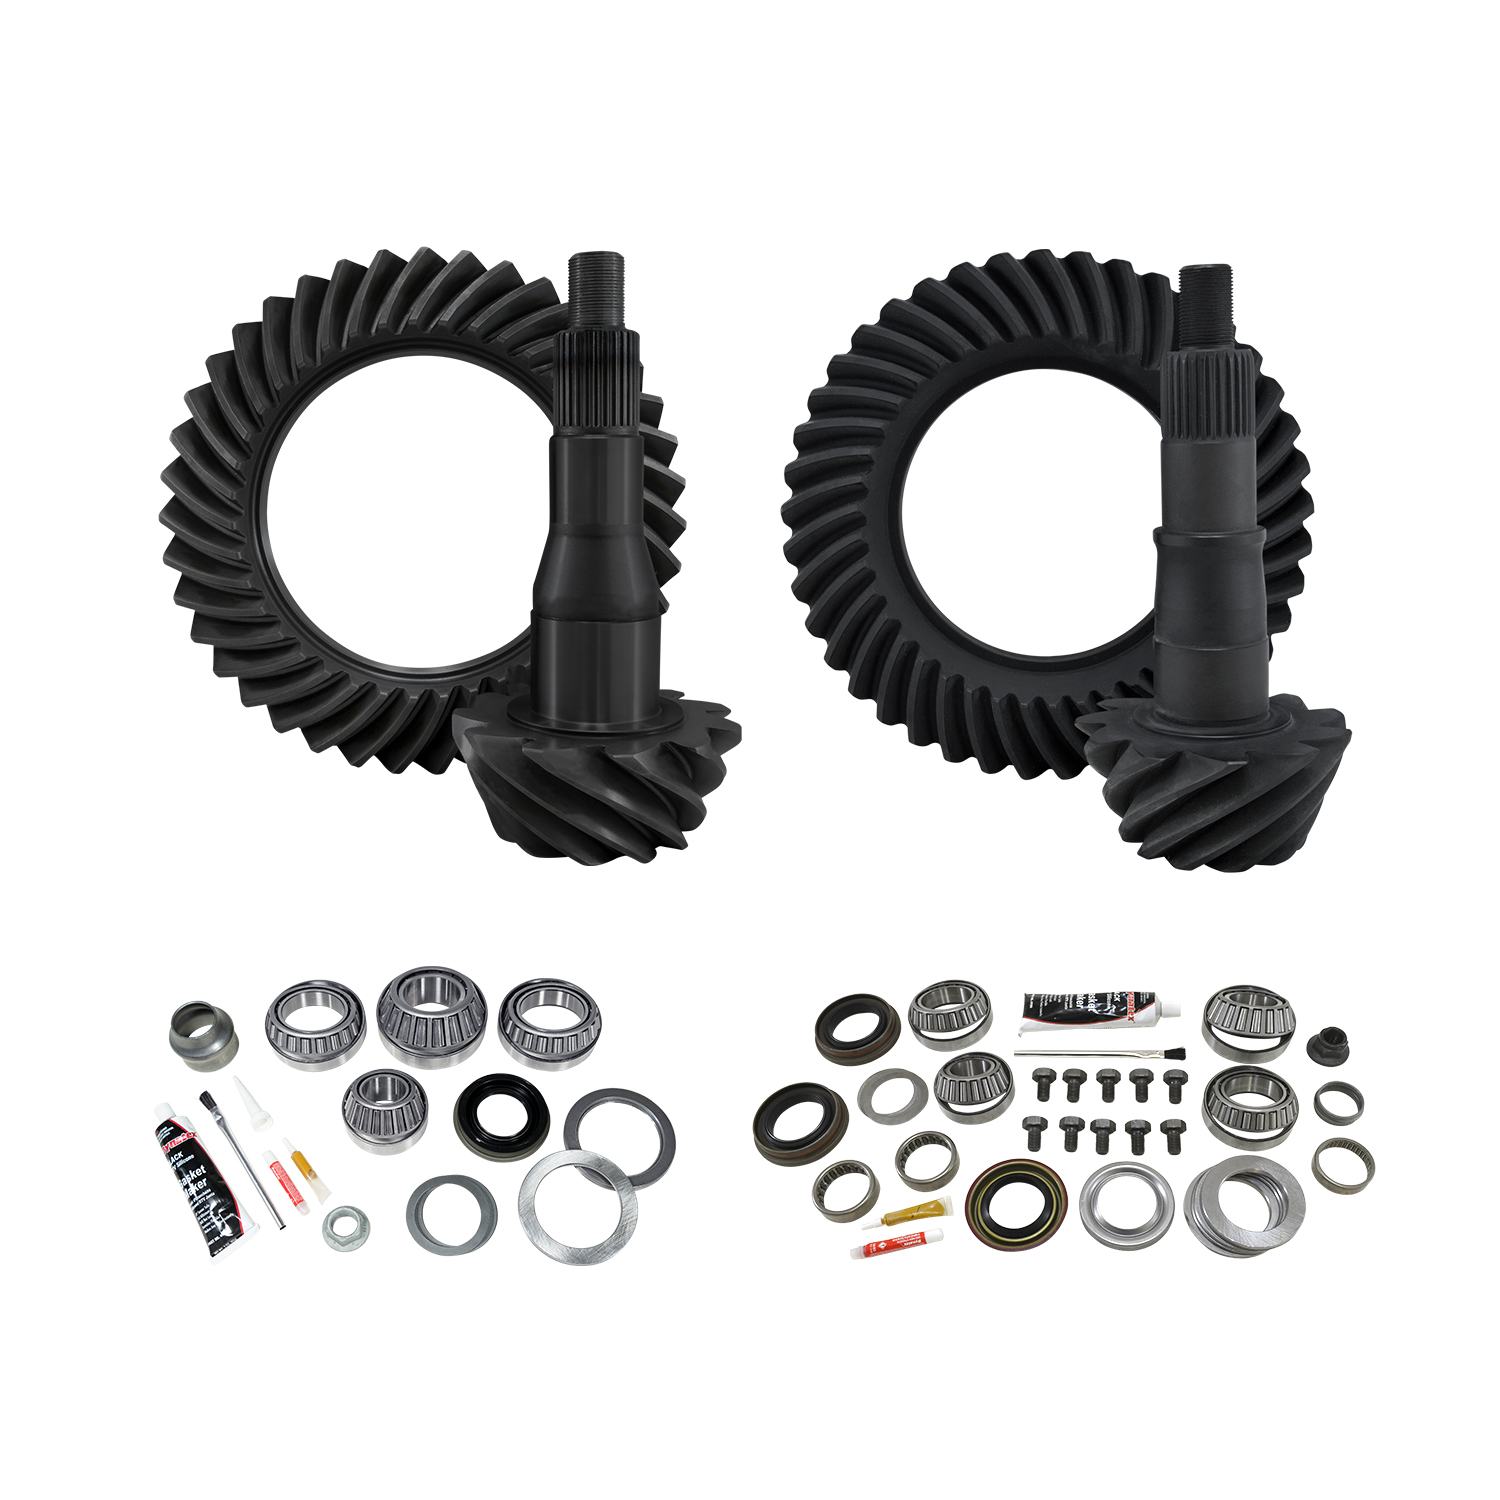 YGK110 - Yukon Complete Gear and Kit Pakage for Various Ford F150 with 9.75